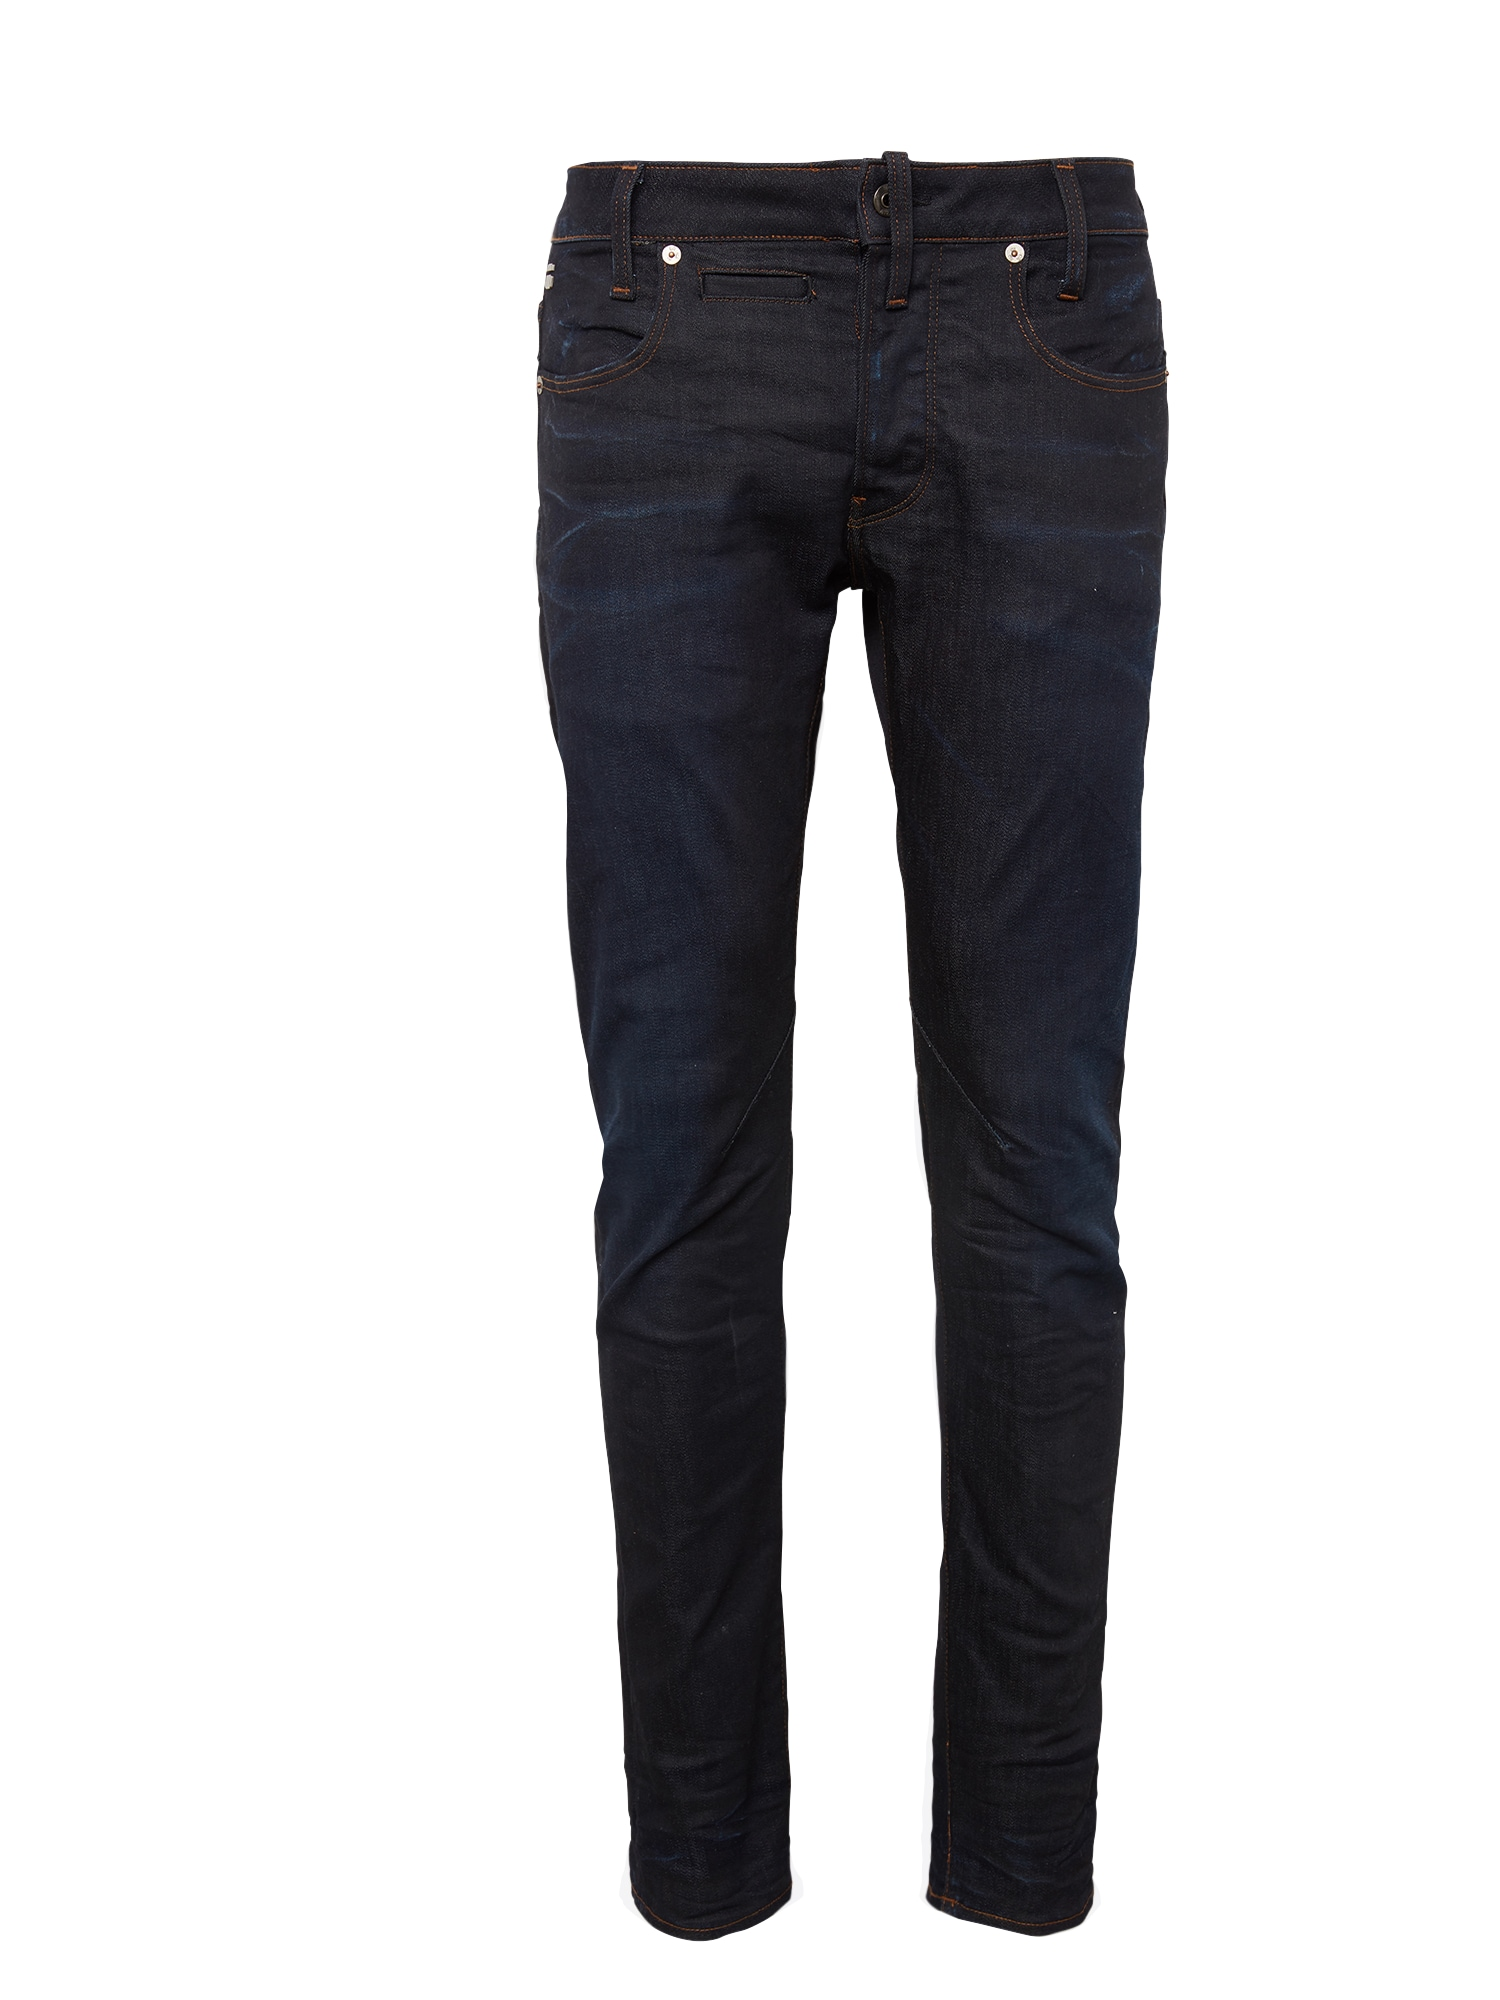 G-STAR RAW Heren Jeans D-Staq 5-pkt Slim navy